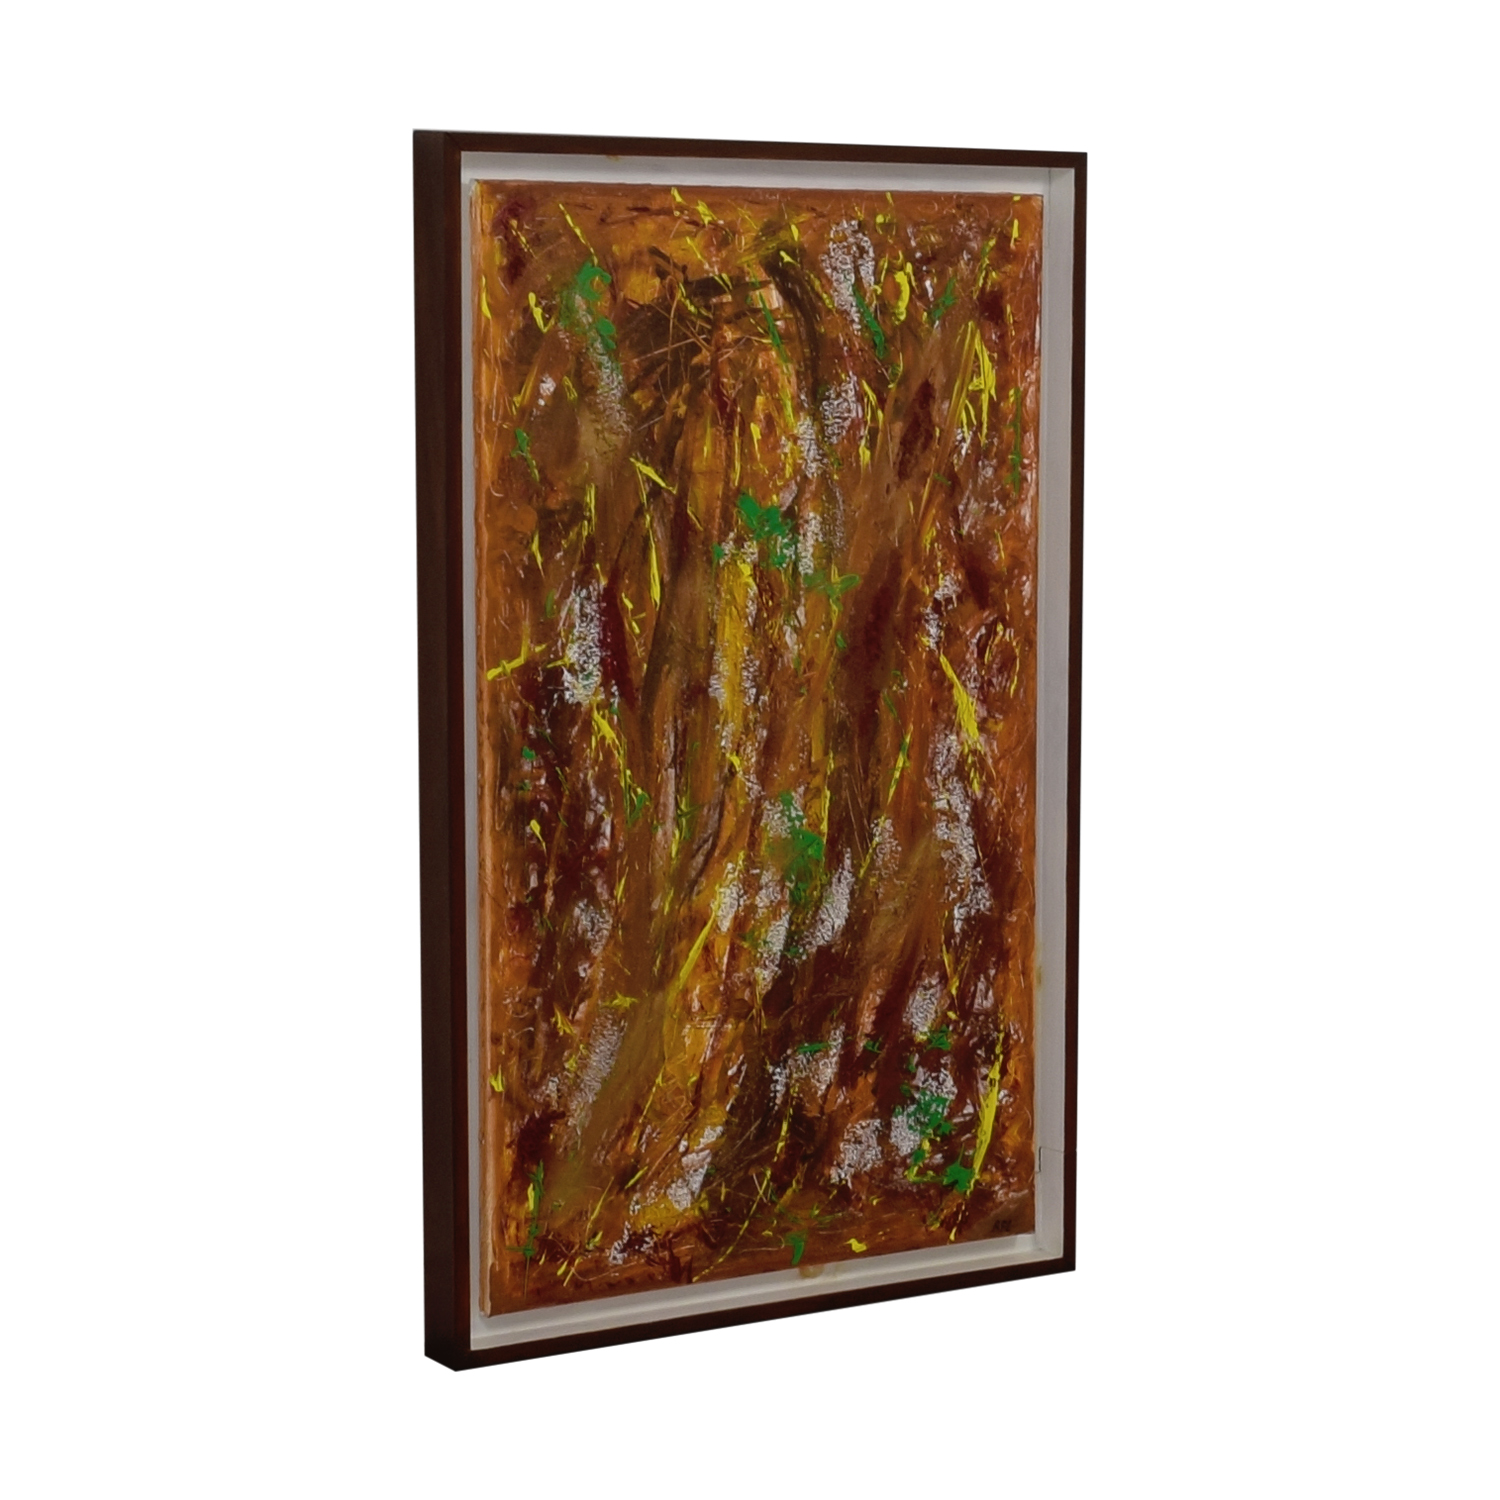 Artist R. Limmer Into the Woods by R. Limmer Framed Painting Multi